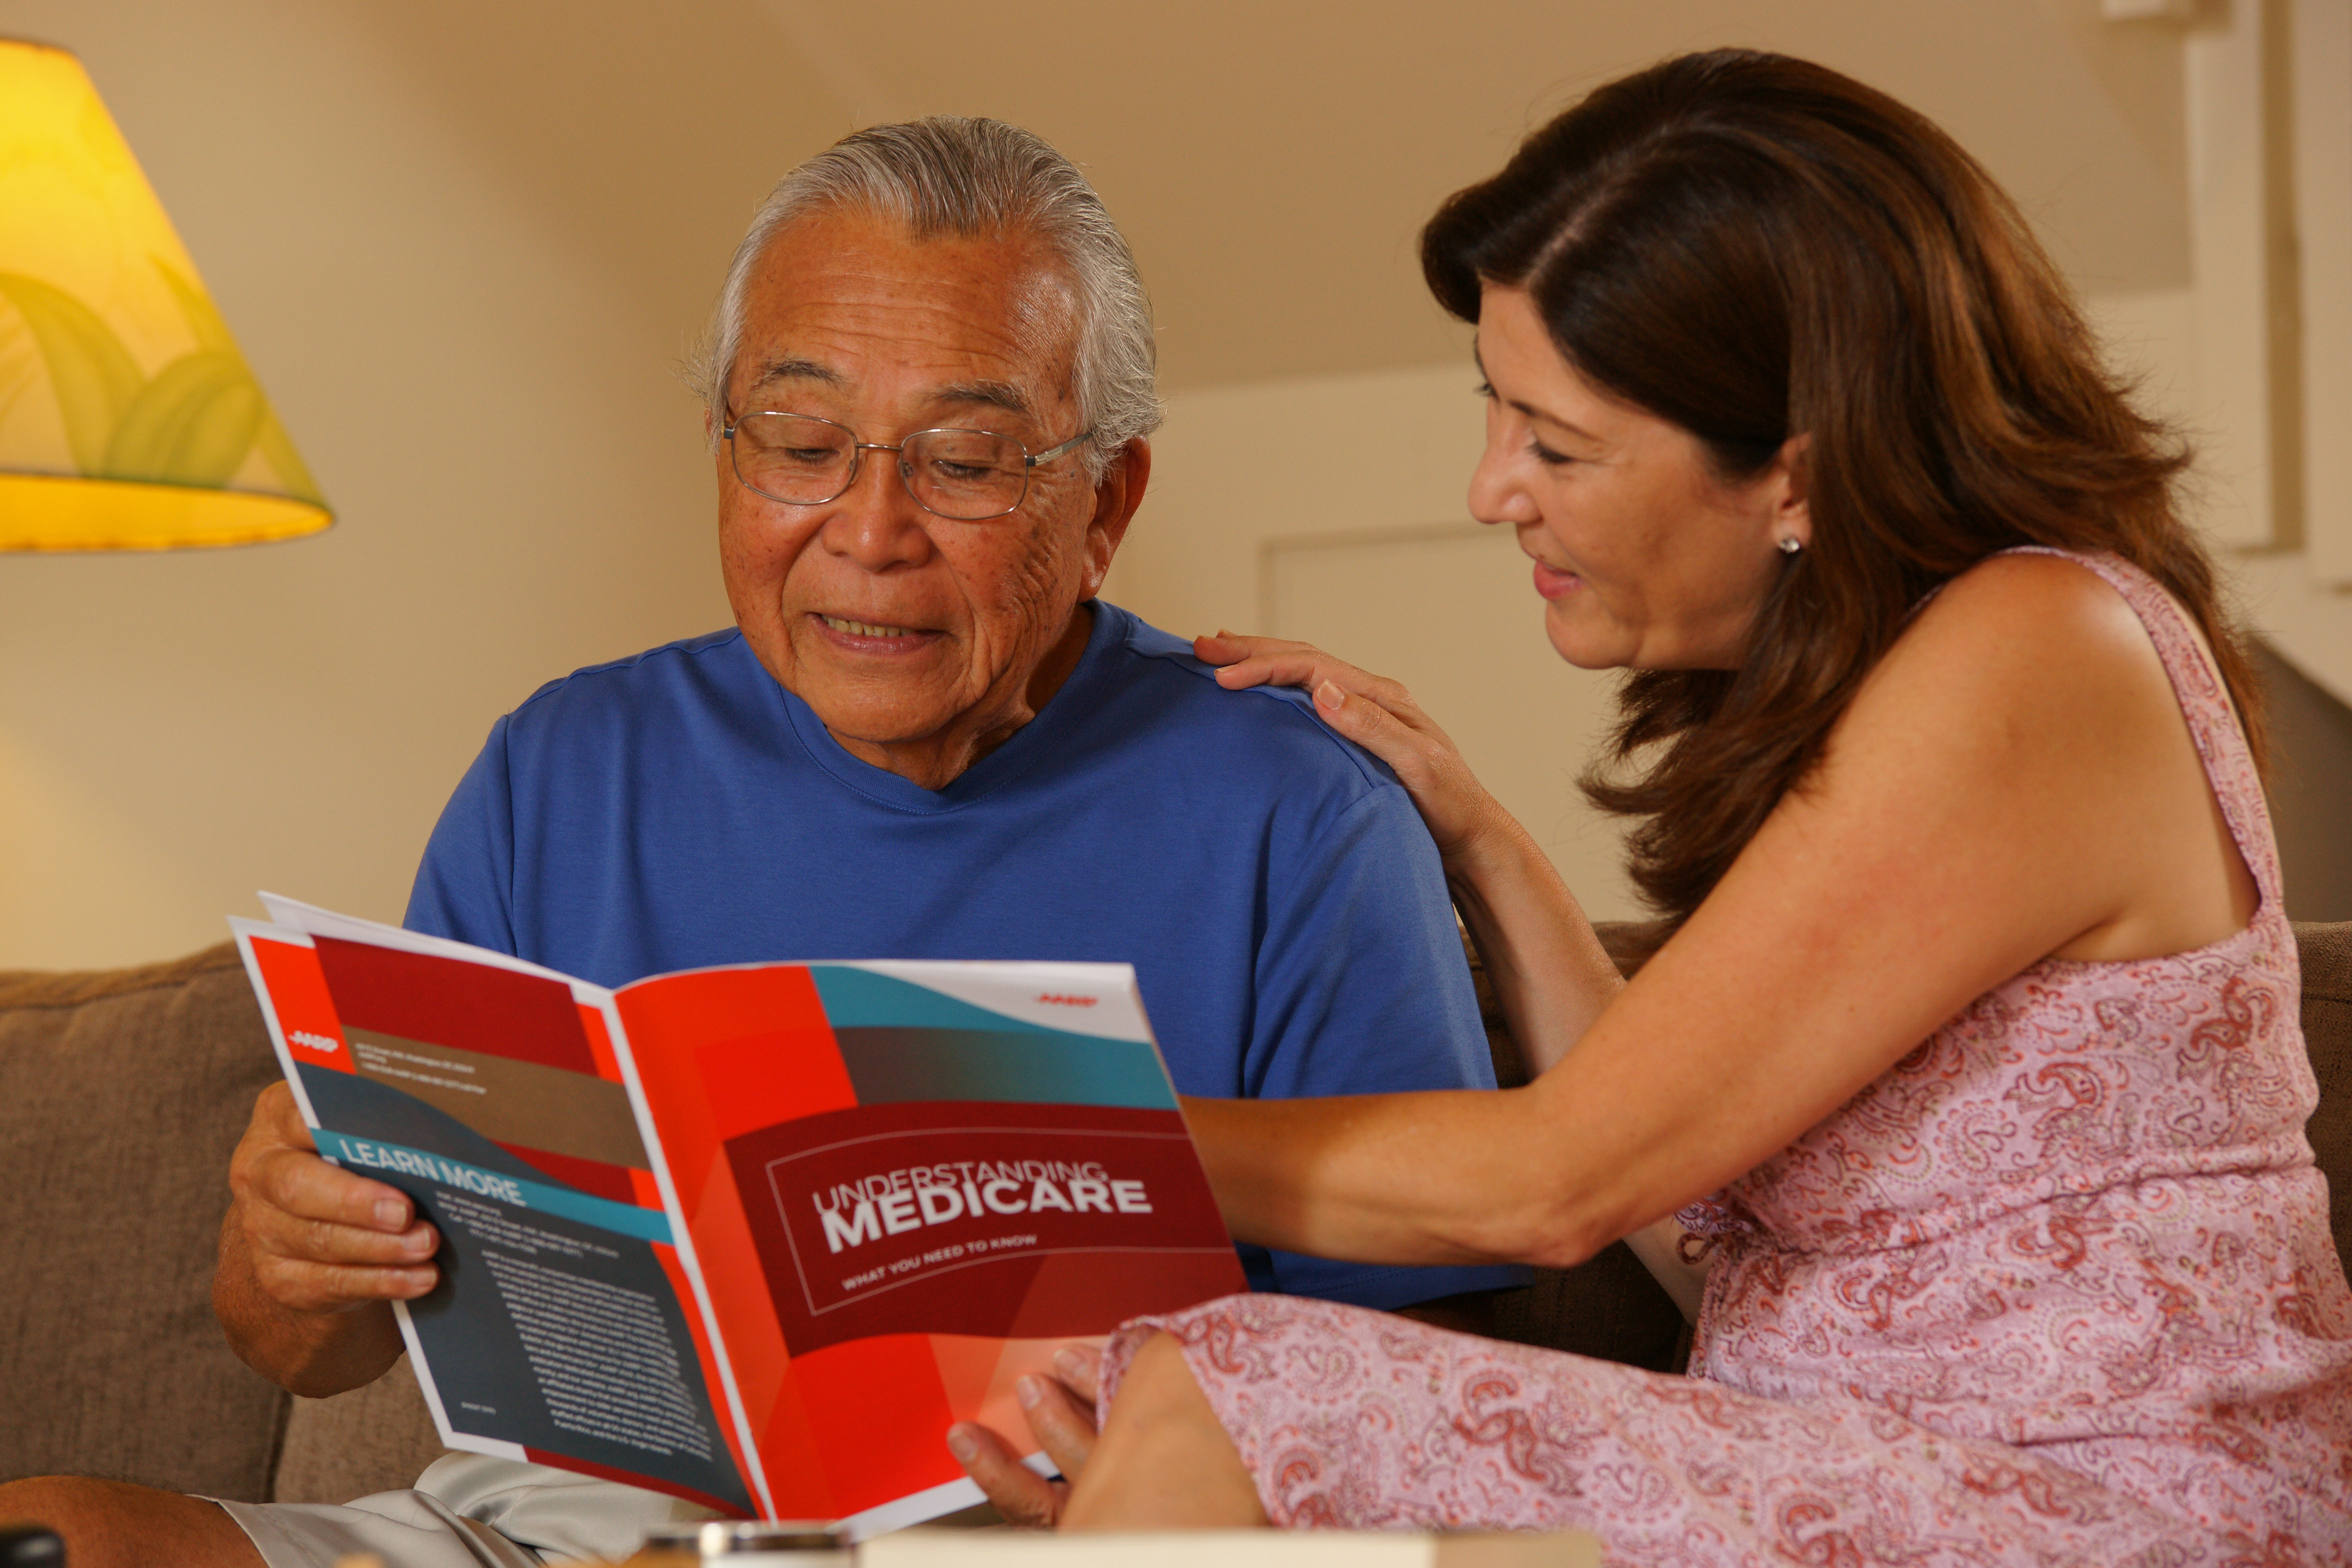 Preparing for long-term care costs